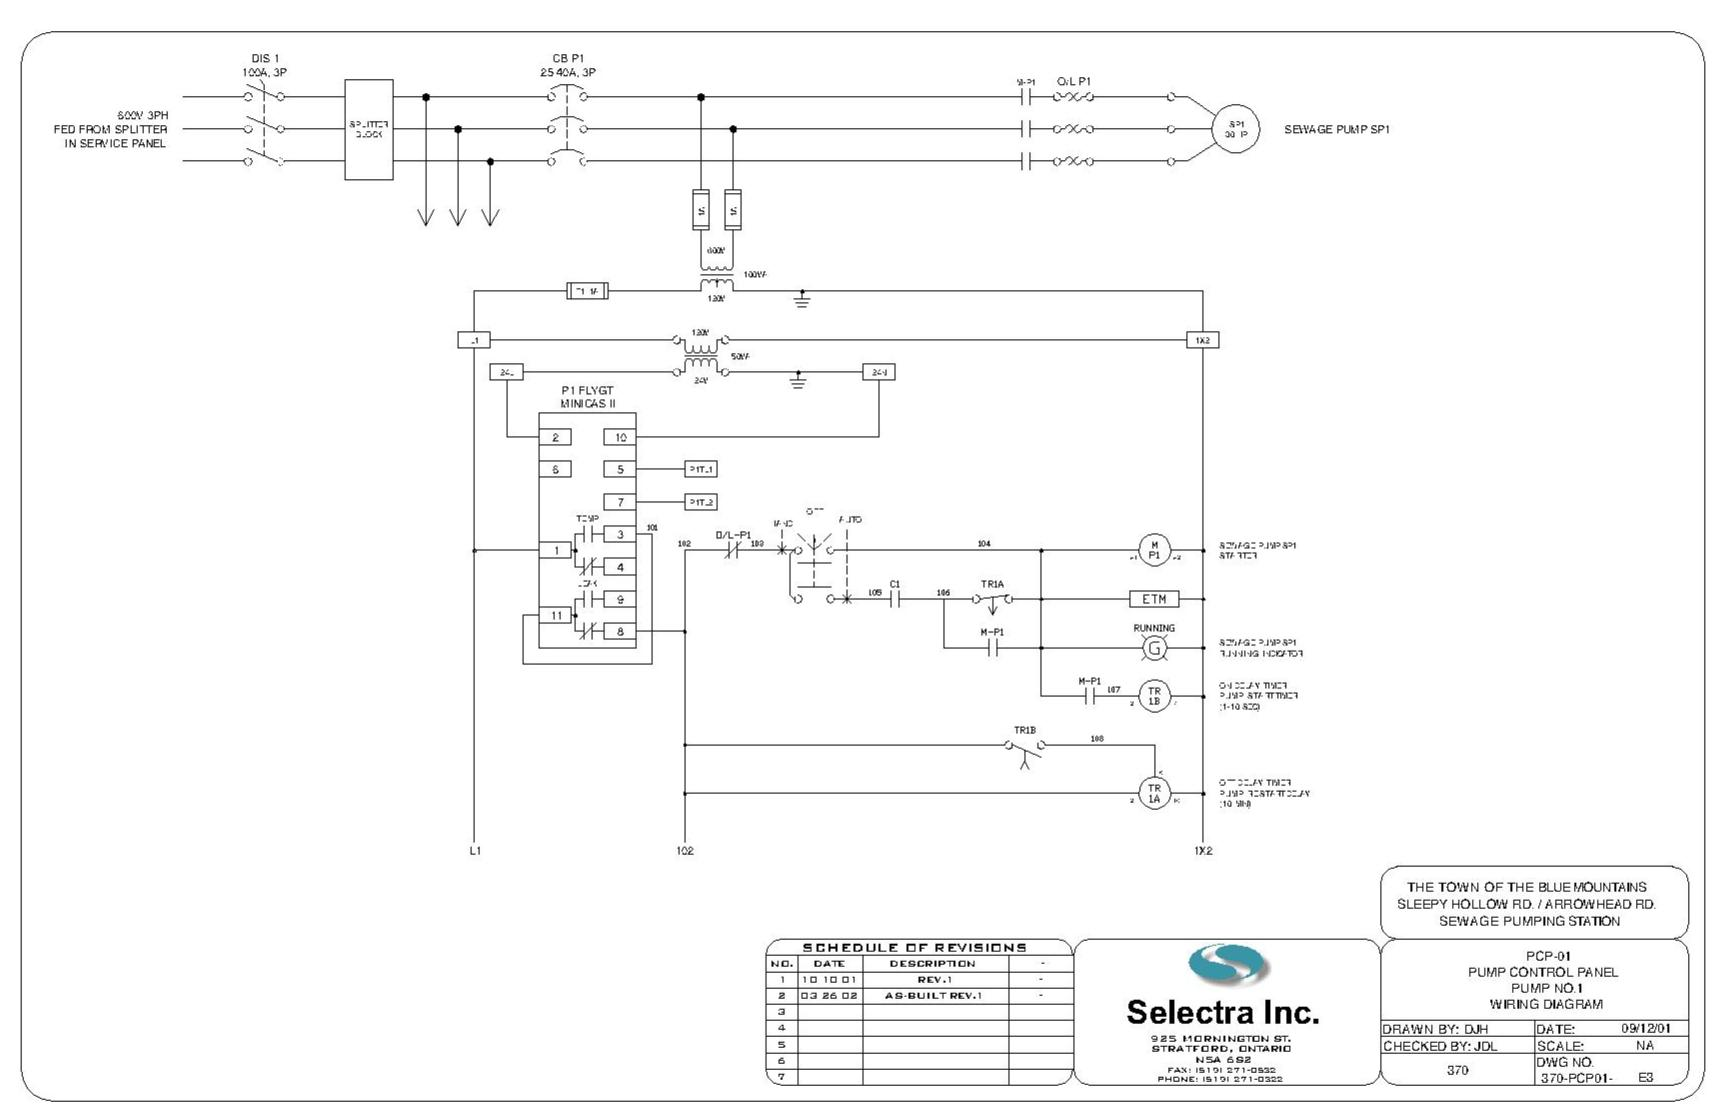 Electrical Control Panel Wiring Diagram: 1 PHASE STARTER PANEL,Design